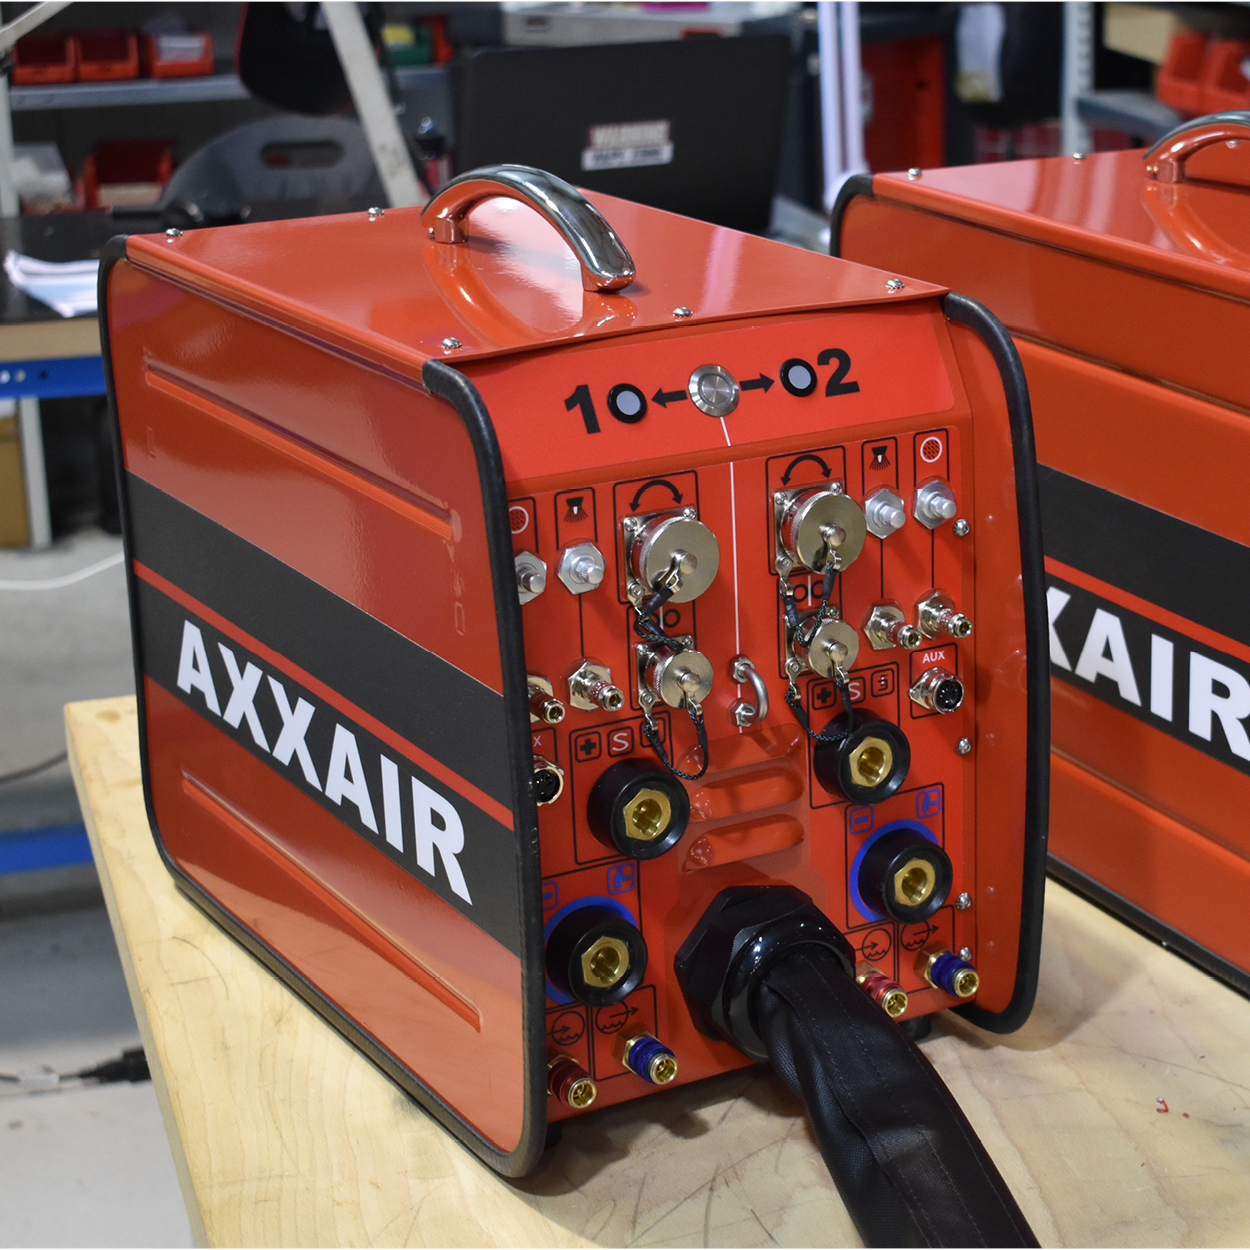 Switchbox AXXAIR 2019